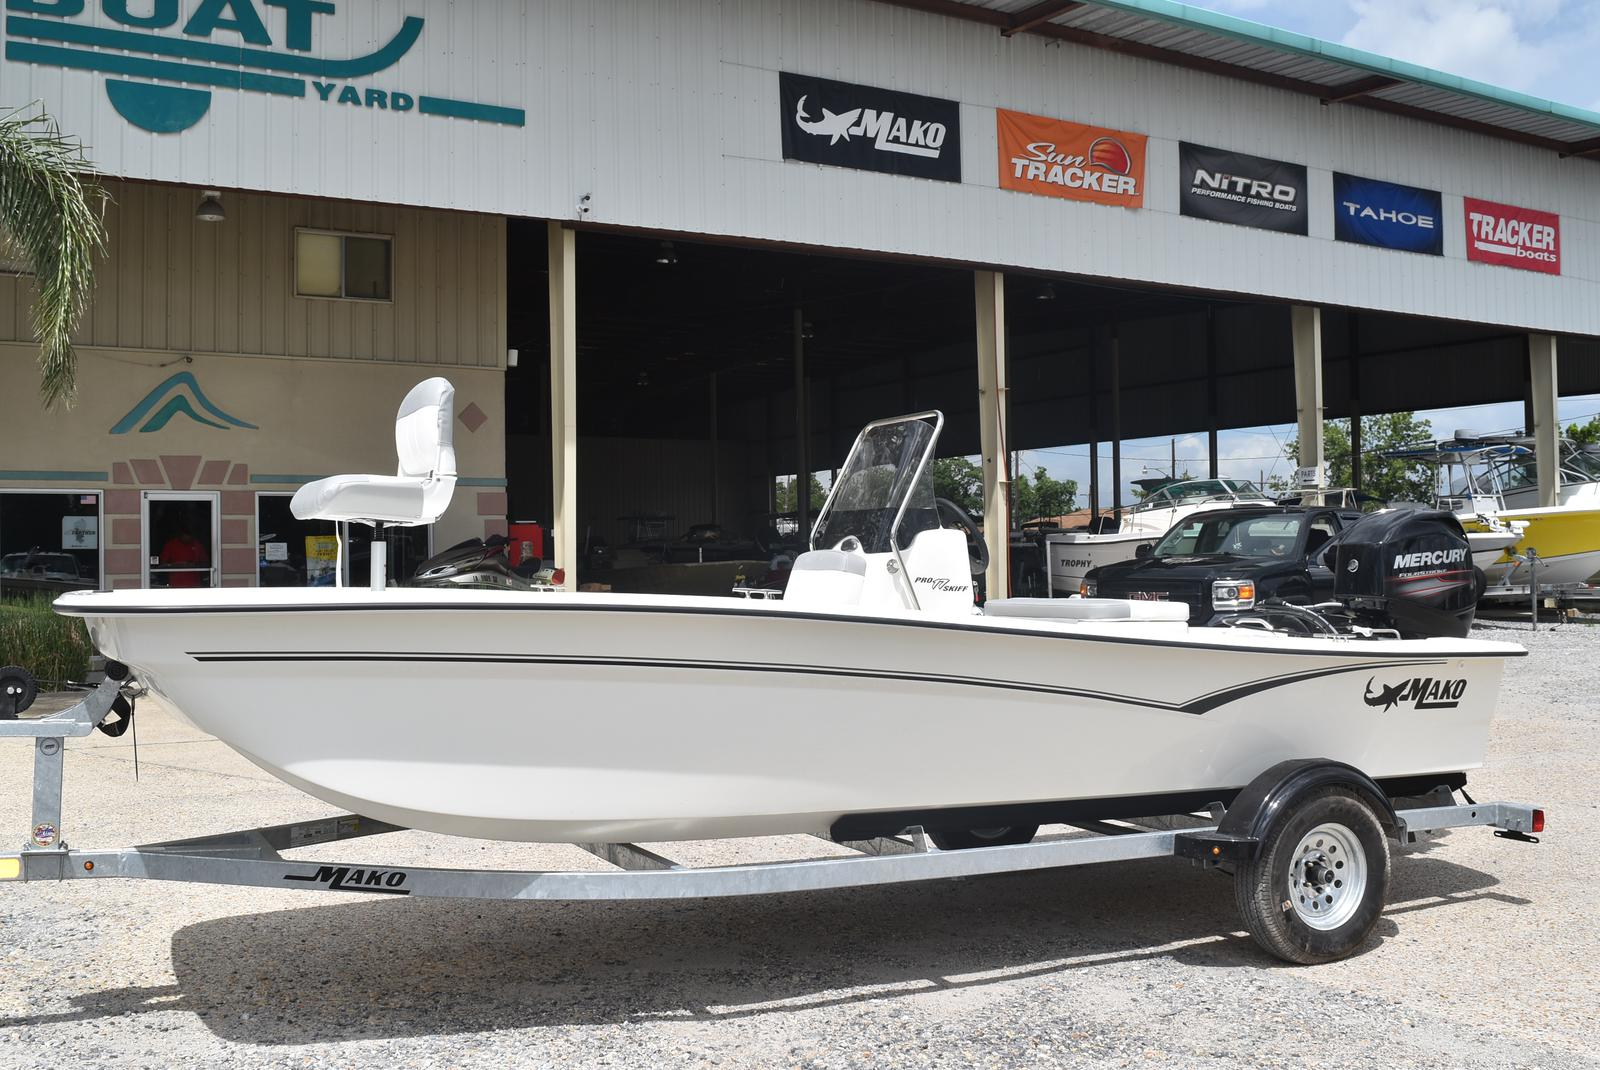 2020 Mako boat for sale, model of the boat is Pro Skiff 17, 75 ELPT & Image # 118 of 702